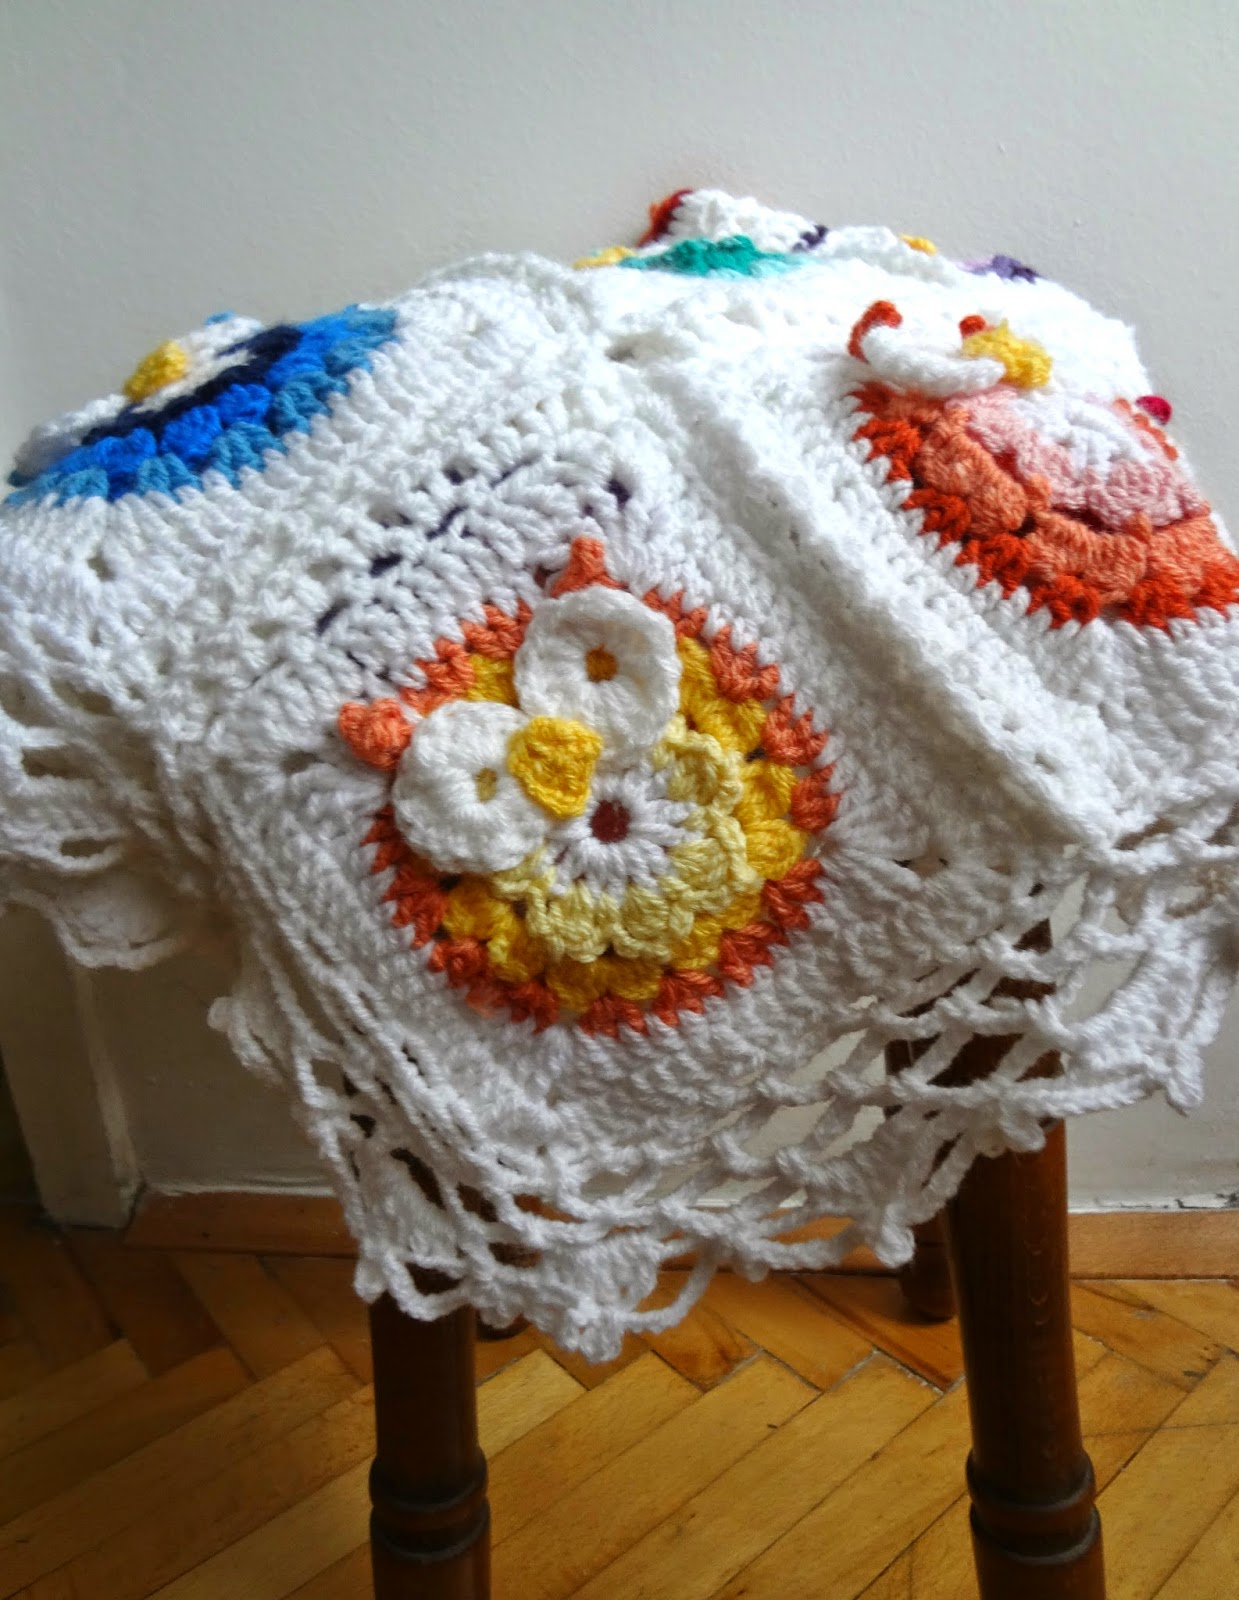 Free Crochet Pattern For Owl Afghan : Little Treasures: Crochet Owl Blanket Pattern